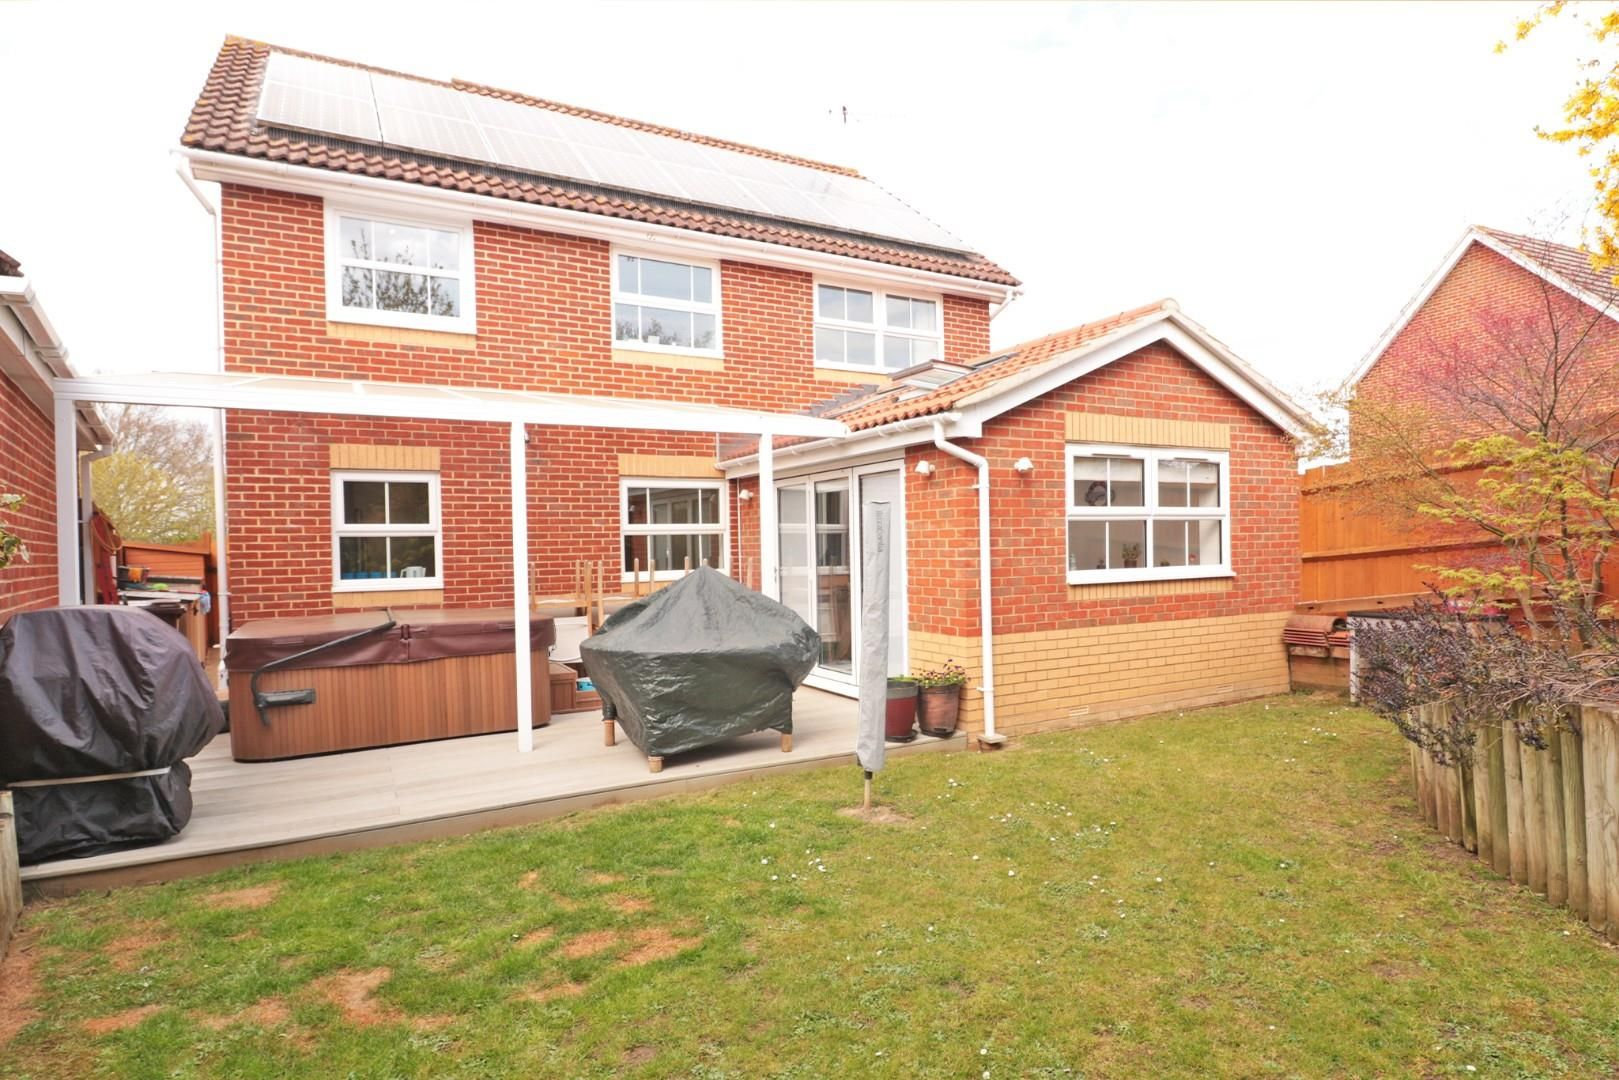 4 bed detached for sale in Binfield 8